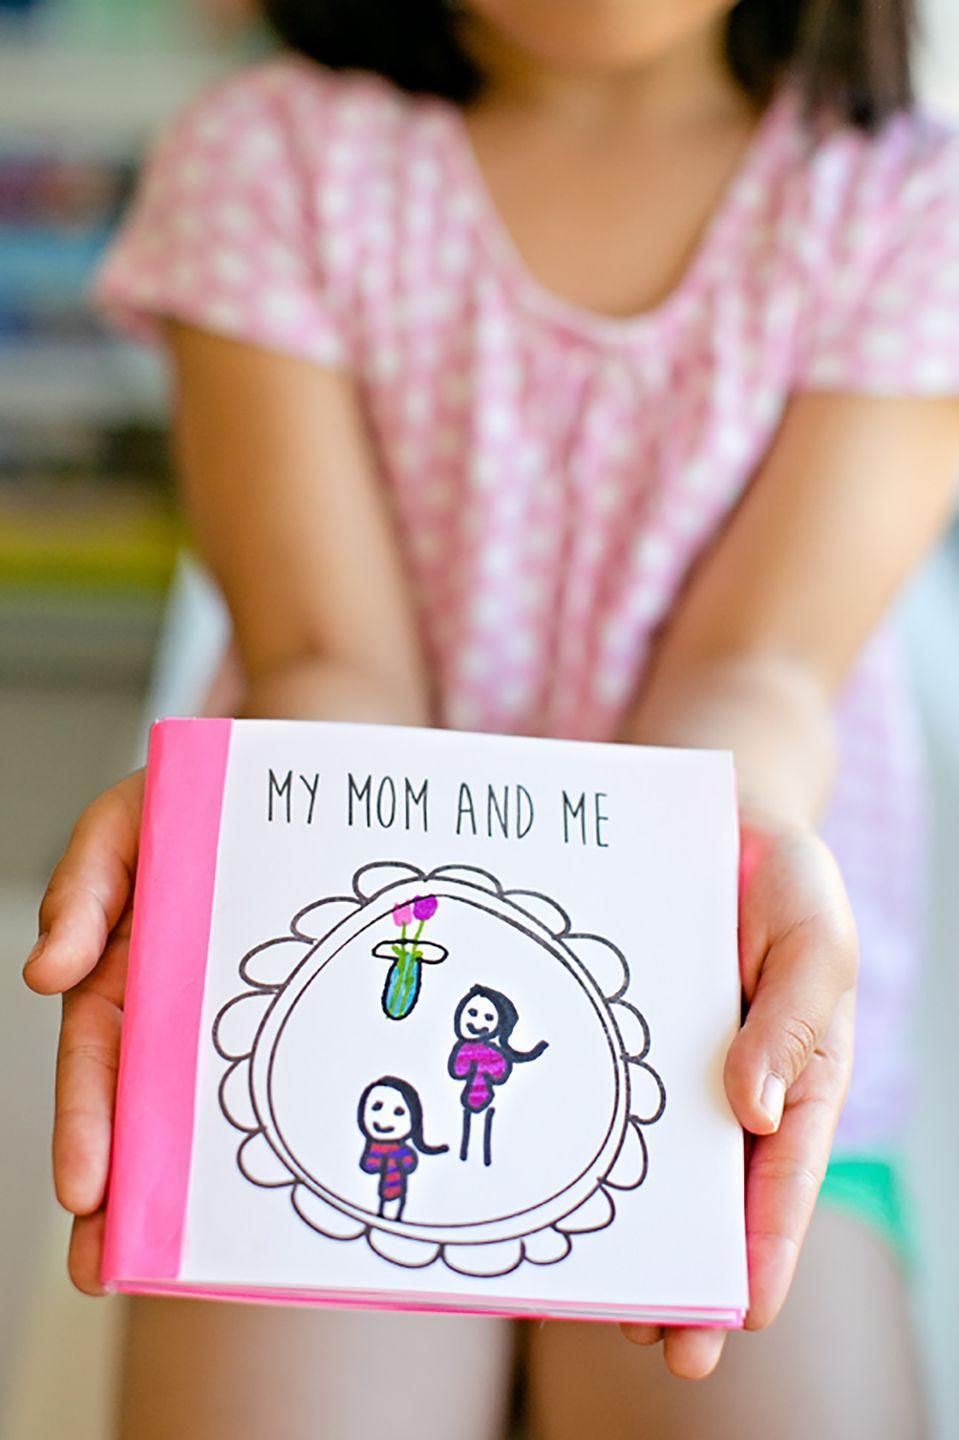 """<p>This precious book can be printed for free online, where you can choose 12 blank frames and 10 prompts for your child to fill out. He or she will complete sentences like, """"My favorite memory of Mom is..."""" or """"My mom makes me feel..."""" and illustrate the book with drawings throughout. The end result: a truly priceless Mother's Day gift.</p><p><strong>Get the tutorial at <a href=""""http://www.hellowonderful.co/post/KID-MADE-FREE-PRINTABLE-MOTHER----S-DAY-BOOK"""" rel=""""nofollow noopener"""" target=""""_blank"""" data-ylk=""""slk:Hello, Wonderful"""" class=""""link rapid-noclick-resp"""">Hello, Wonderful</a>. </strong></p>"""